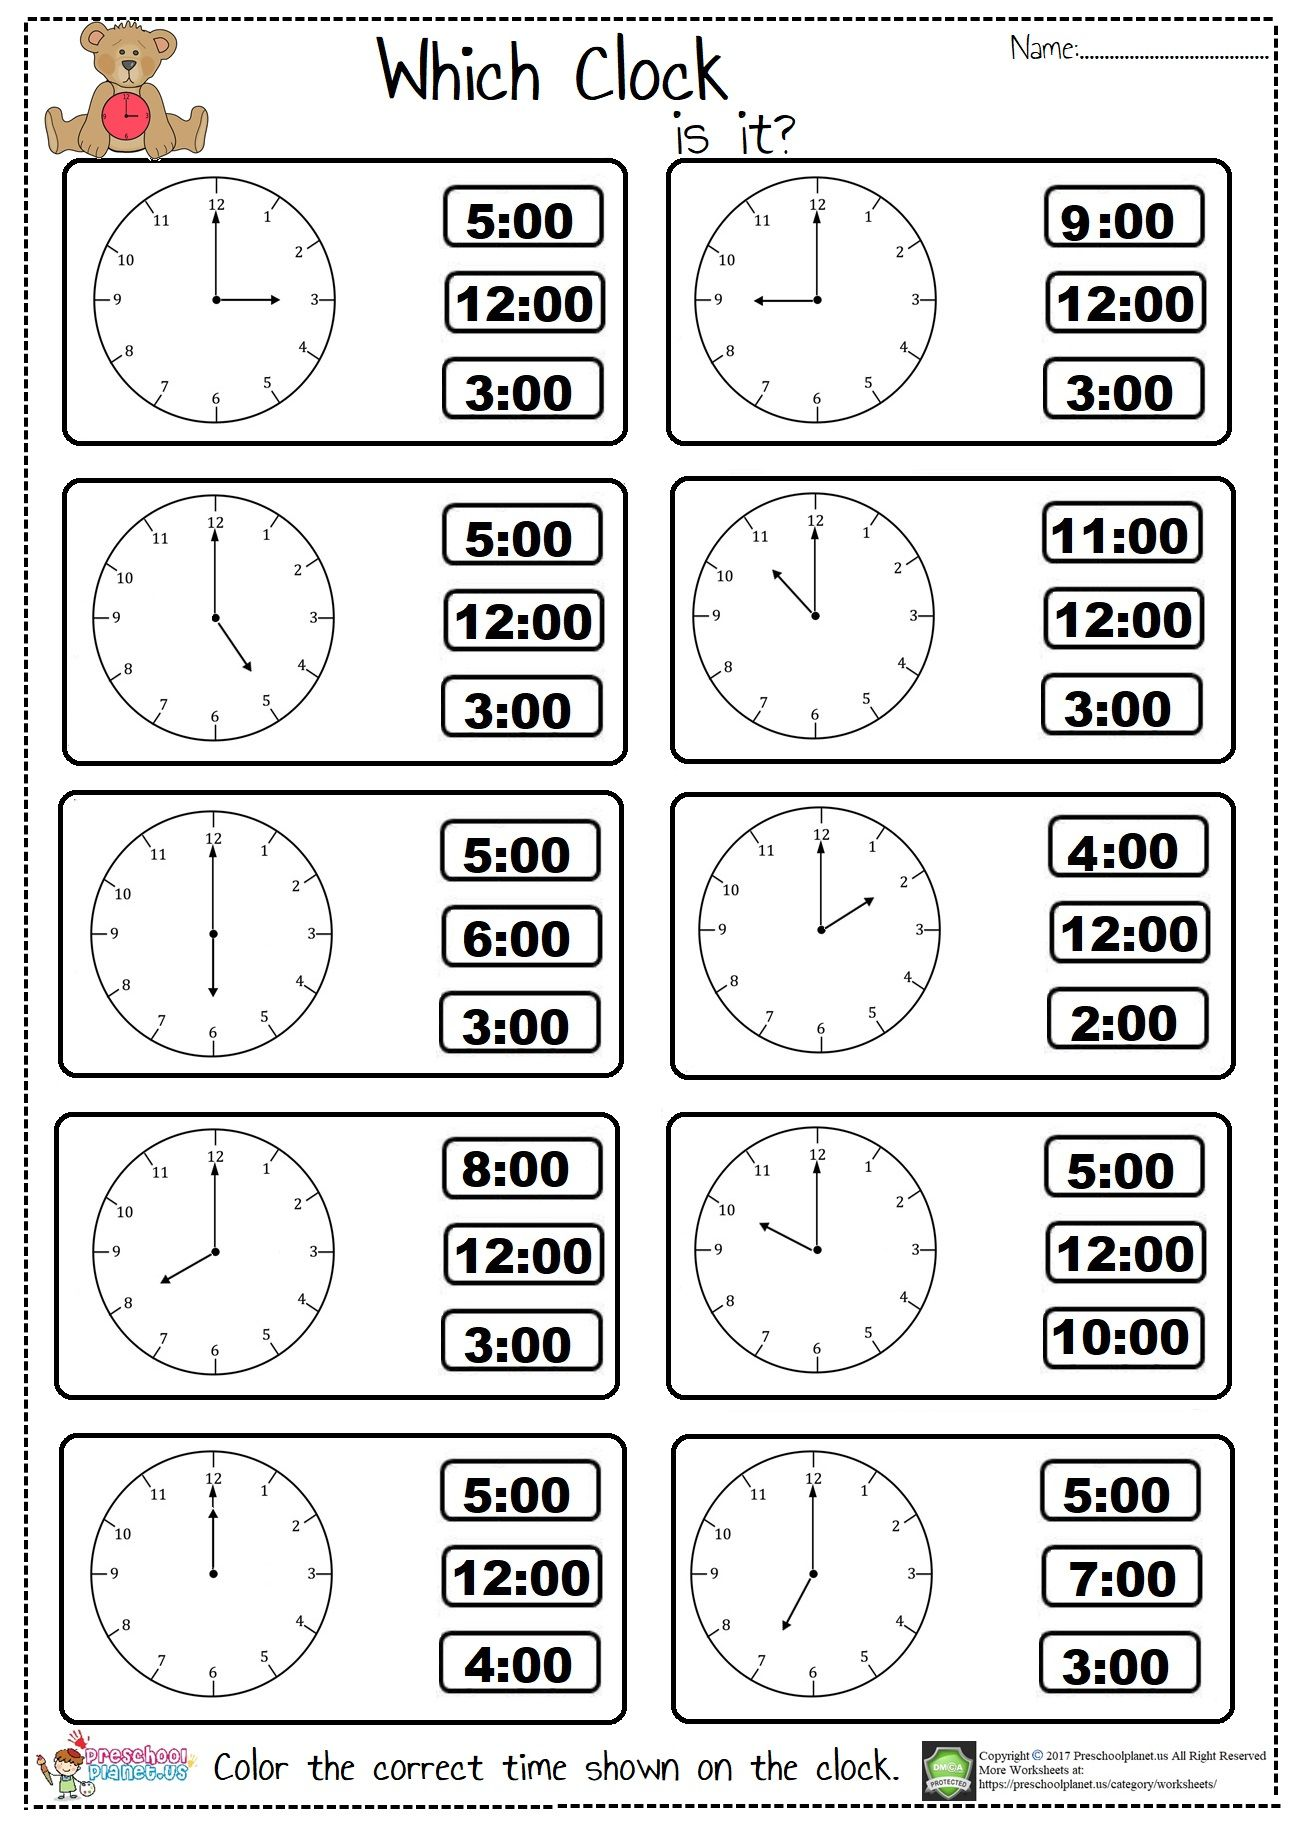 - Hey! Did You Check Out Our New Telling Time Worksheet? We Prepared